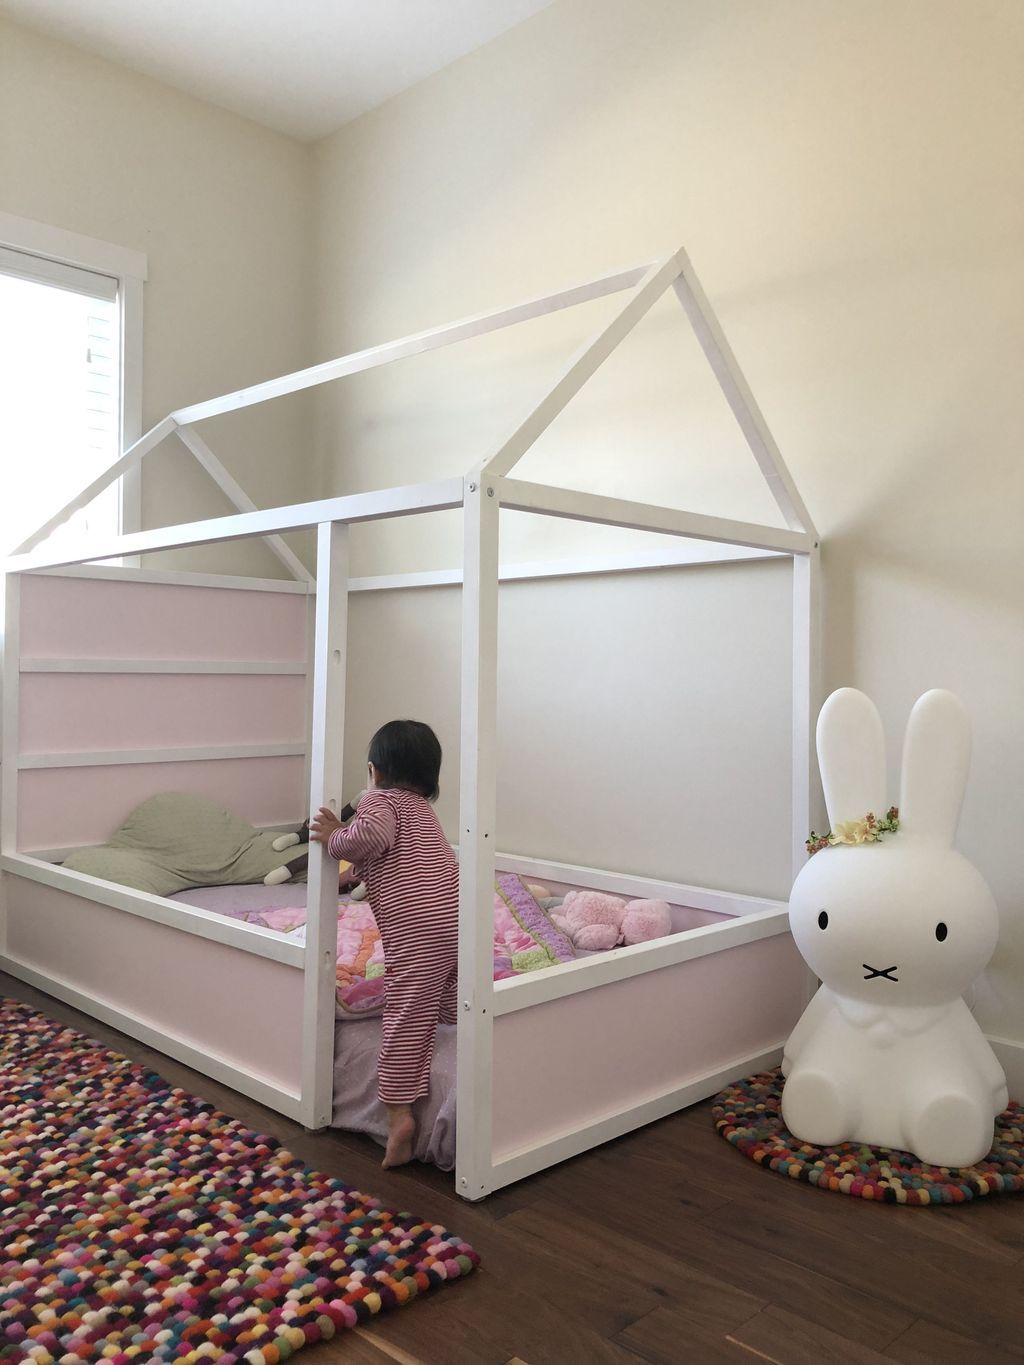 Cool 51 Cool Ikea Kura Beds Ideas For Your Kids Rooms More At Https Homystyle Com 2018 10 02 51 Cool Ikea Ku Floor Bed Ikea Toddler Floor Bed Kids Floor Bed